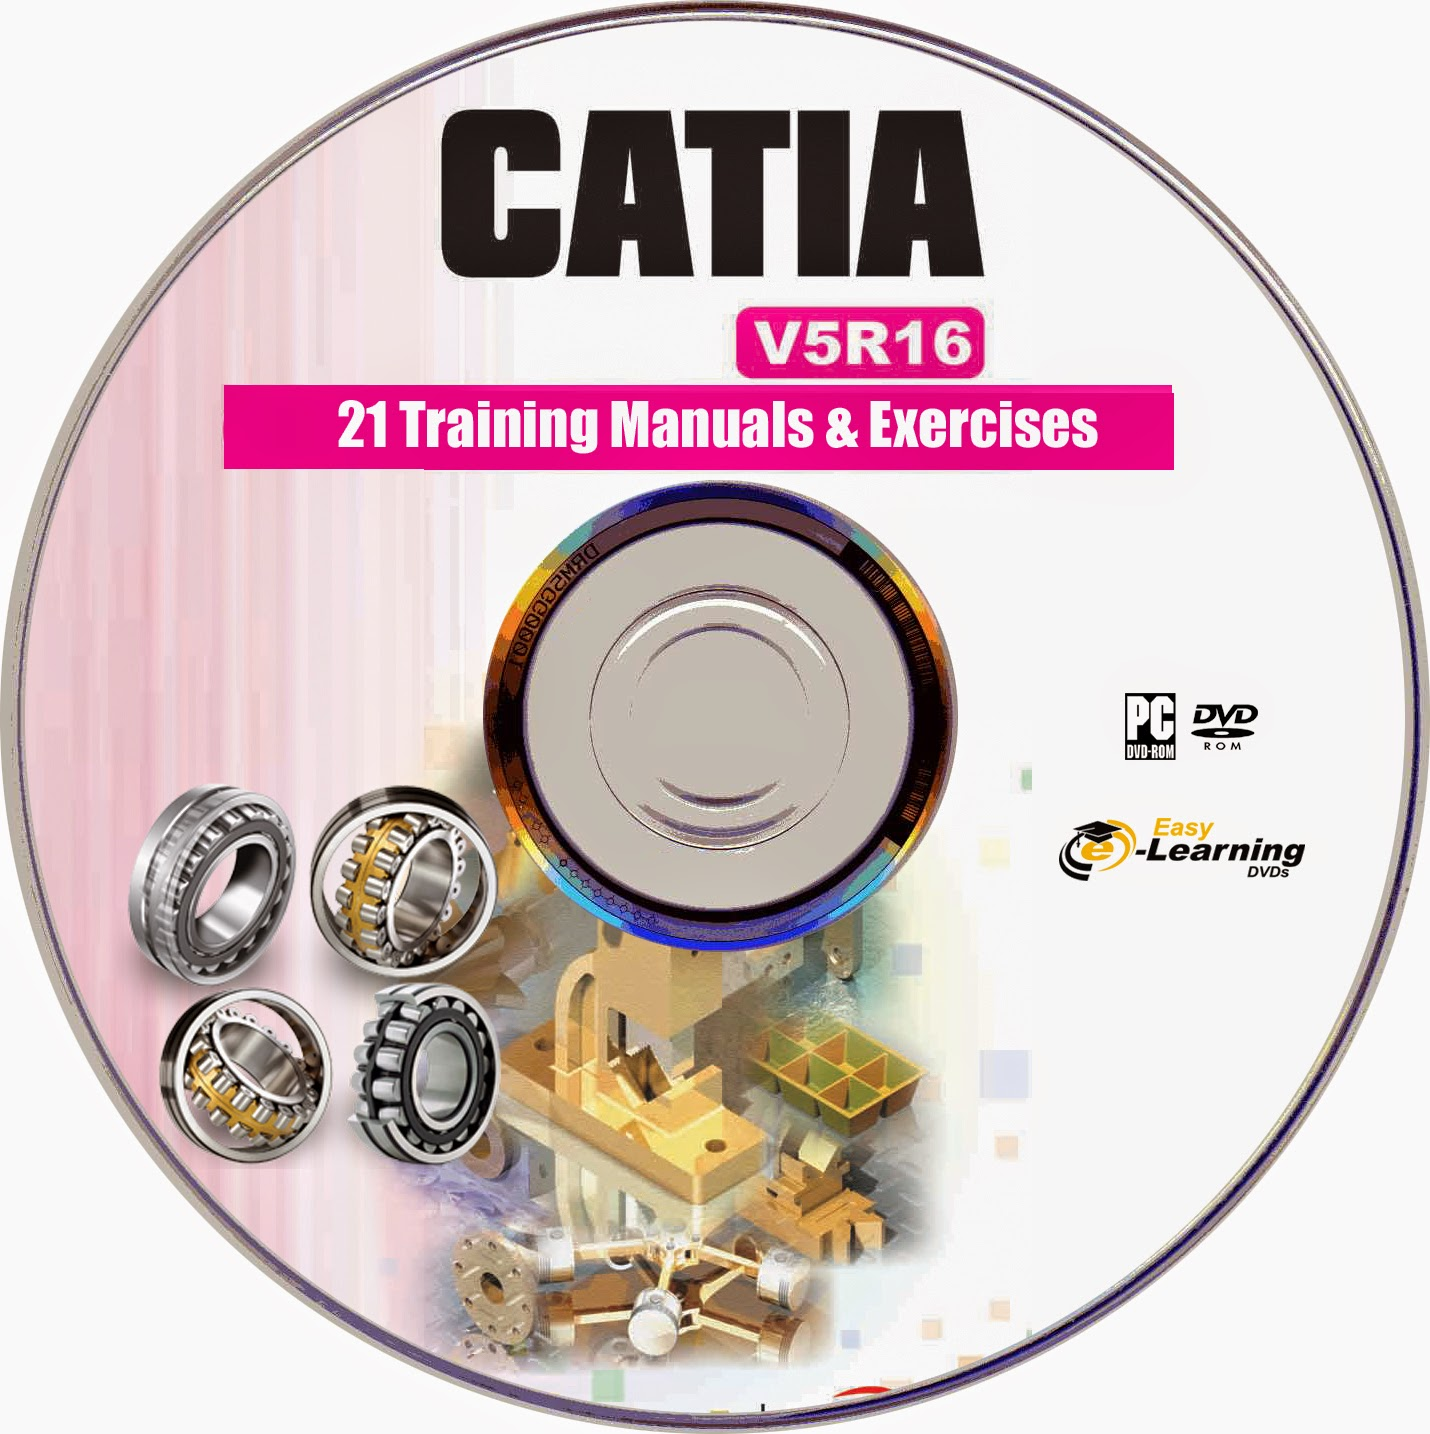 easy learning dvds catia v5 training manuals exercises dvd rs 300 rh easylearningdvds blogspot com catia v5 training guide catia v5 training material free download